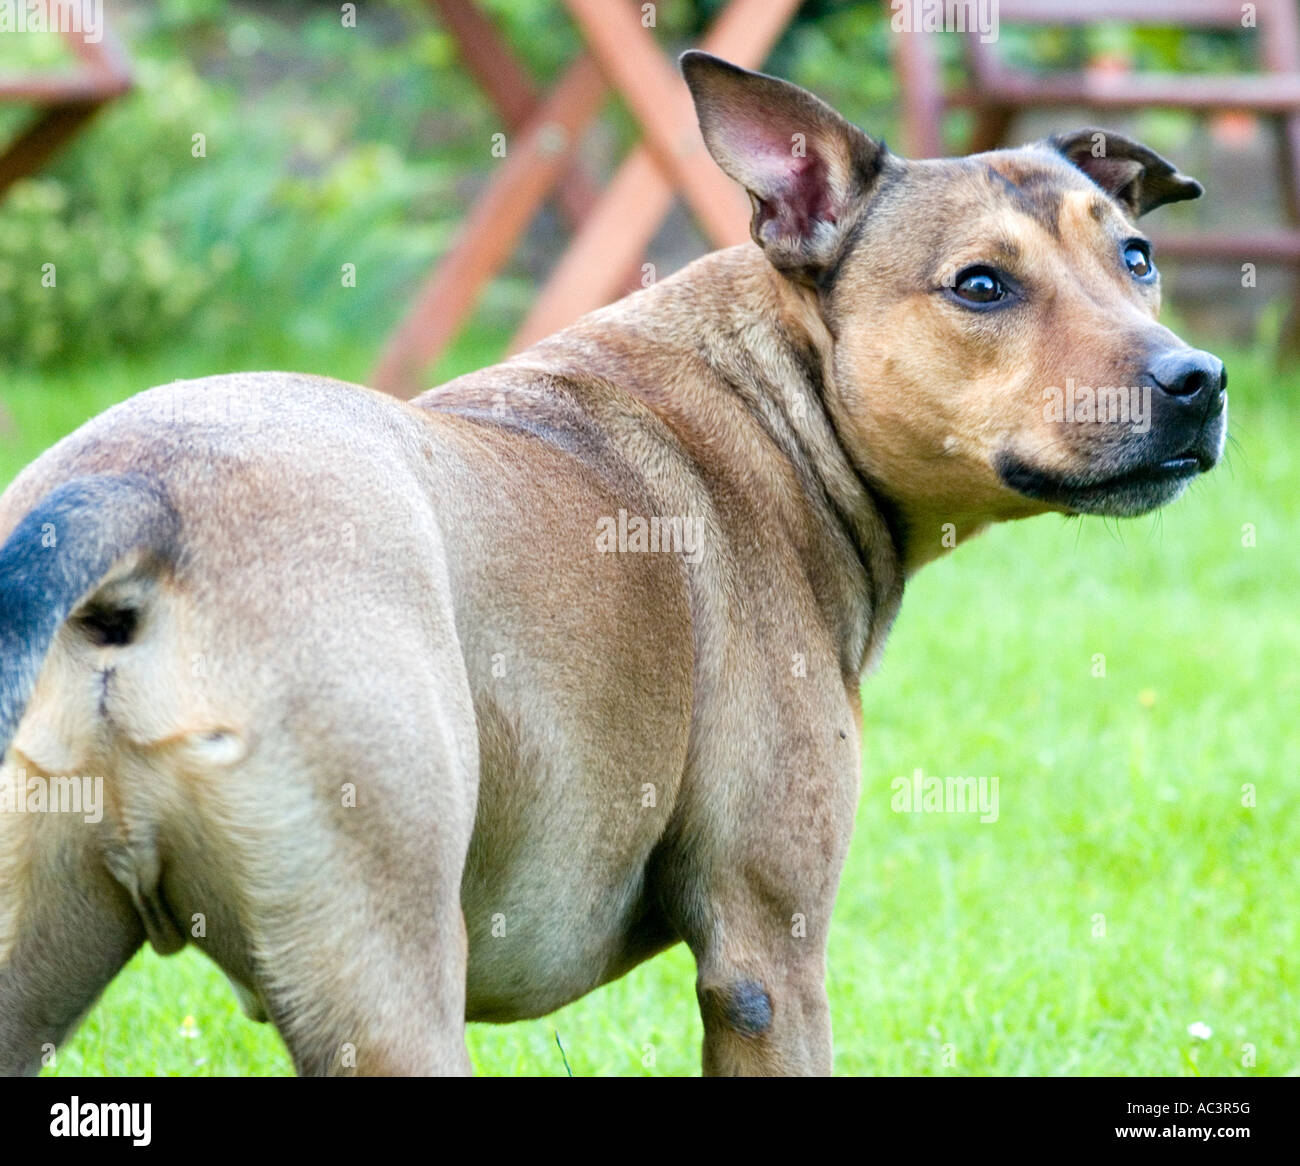 A Brown Staffordshire Bull Terrier Cross, Male Dog - Stock Image